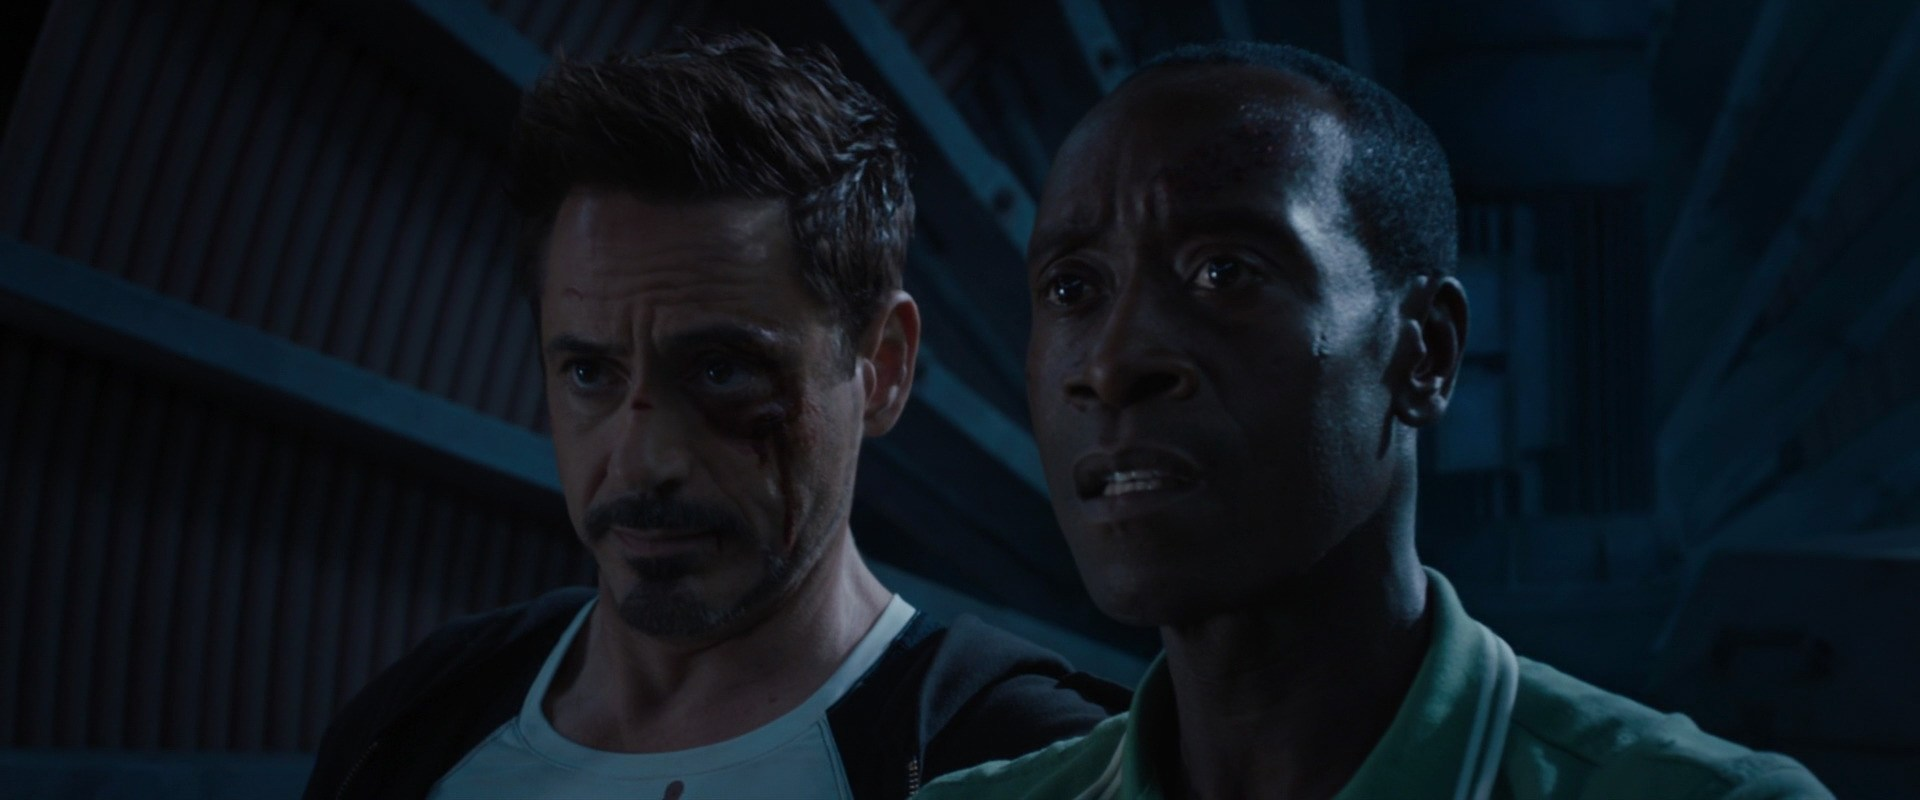 File:Iron-man-3-trailer-1-.jpg